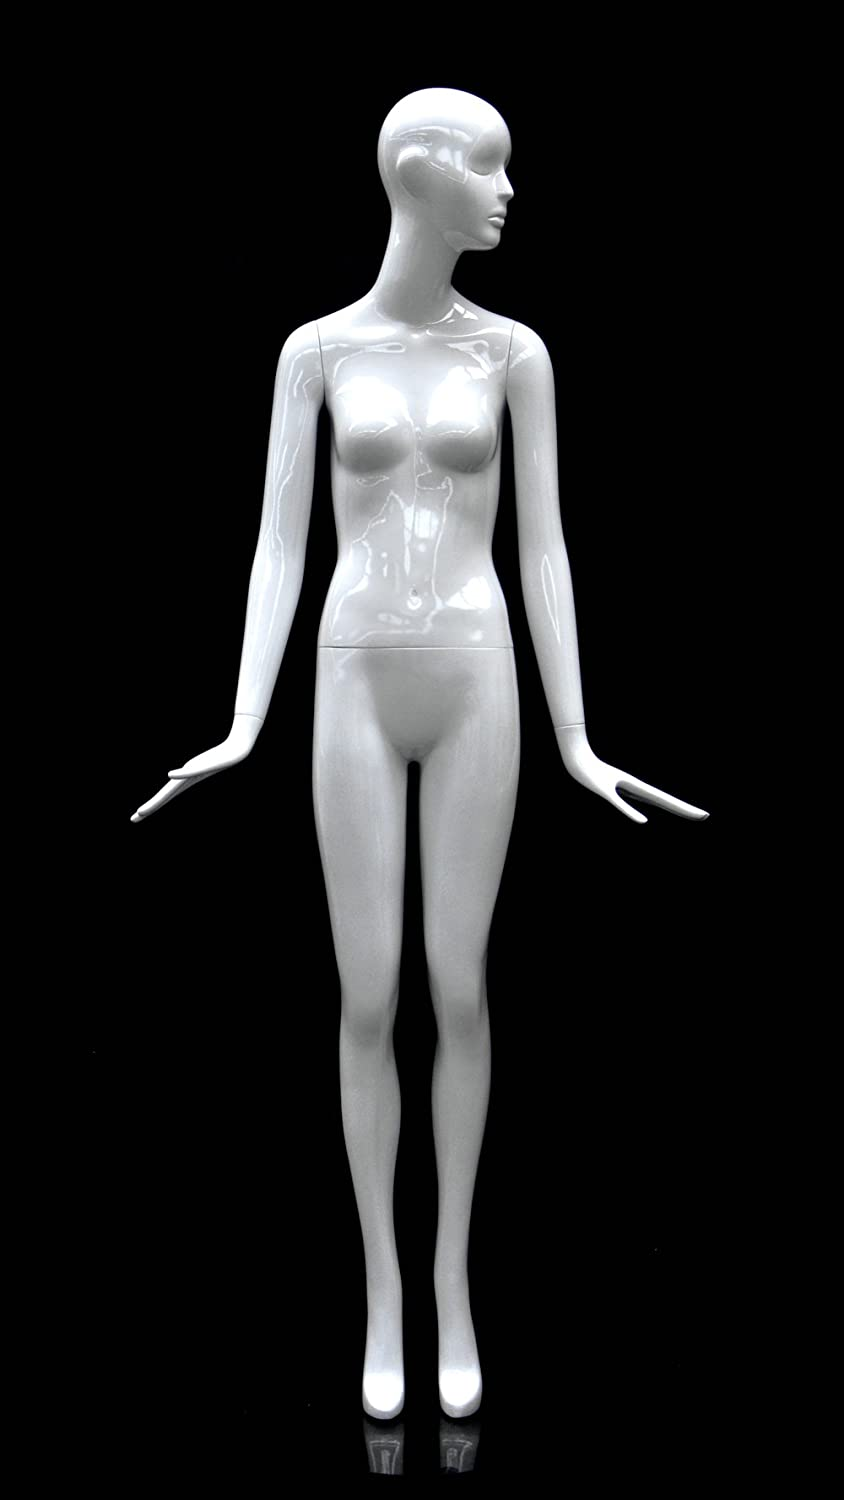 ROXYDISPLAY/™ Female Abstract Head Mannequins Elegant Standing Pose with Straight Legs. MZ-BESS-10